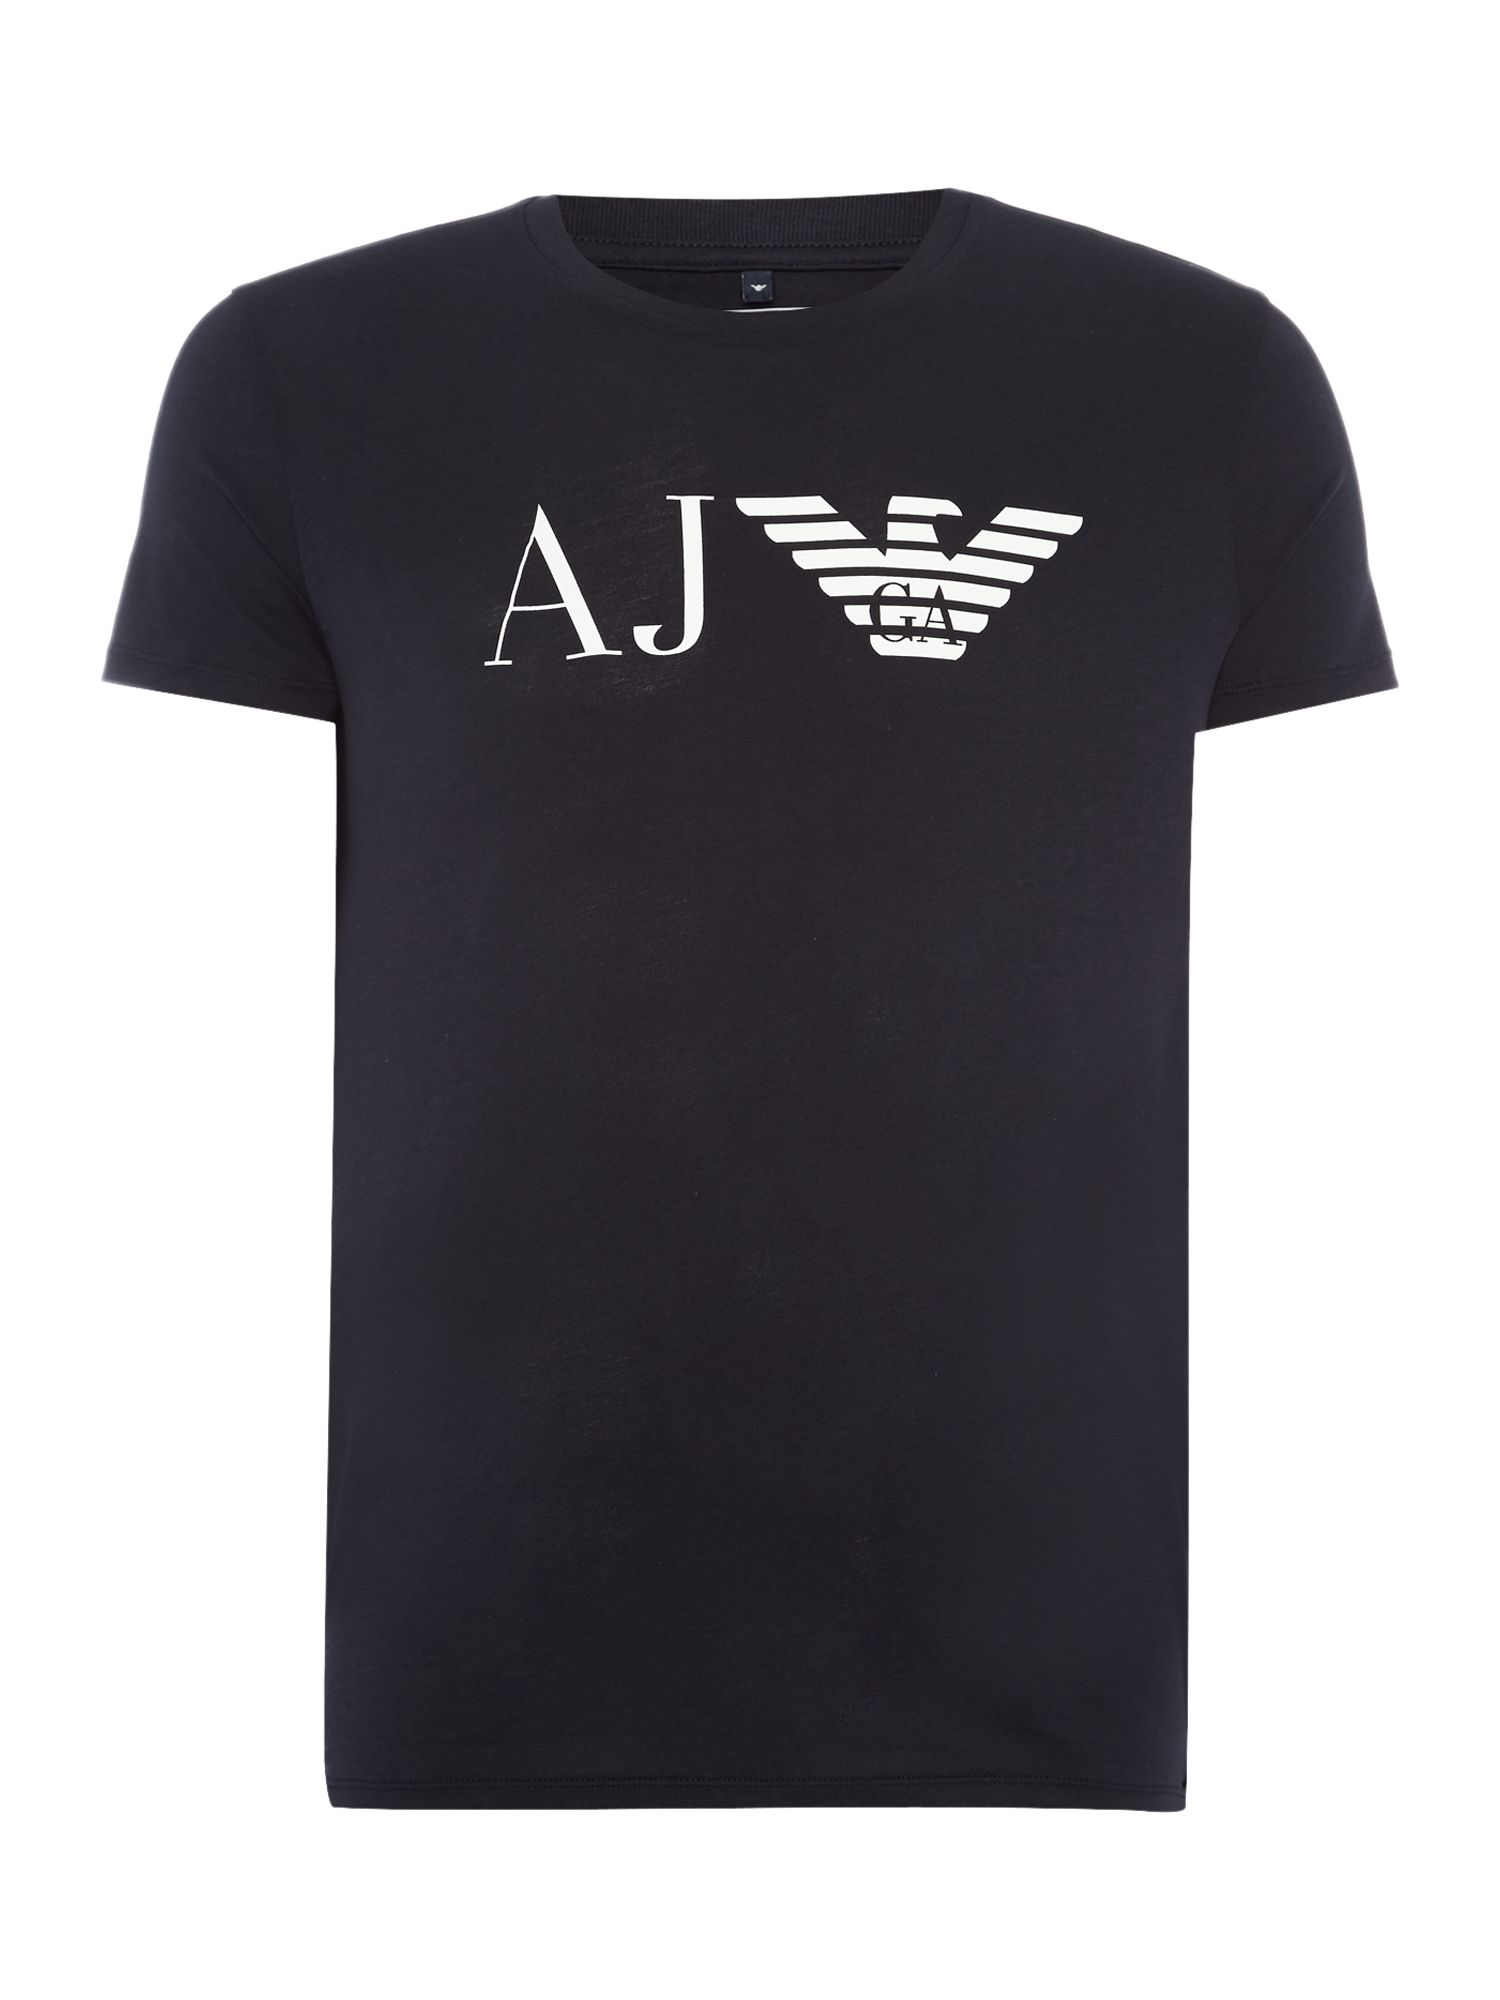 Men's Armani Jeans Regular fit AJ eagle logo printed t shirt, Blue